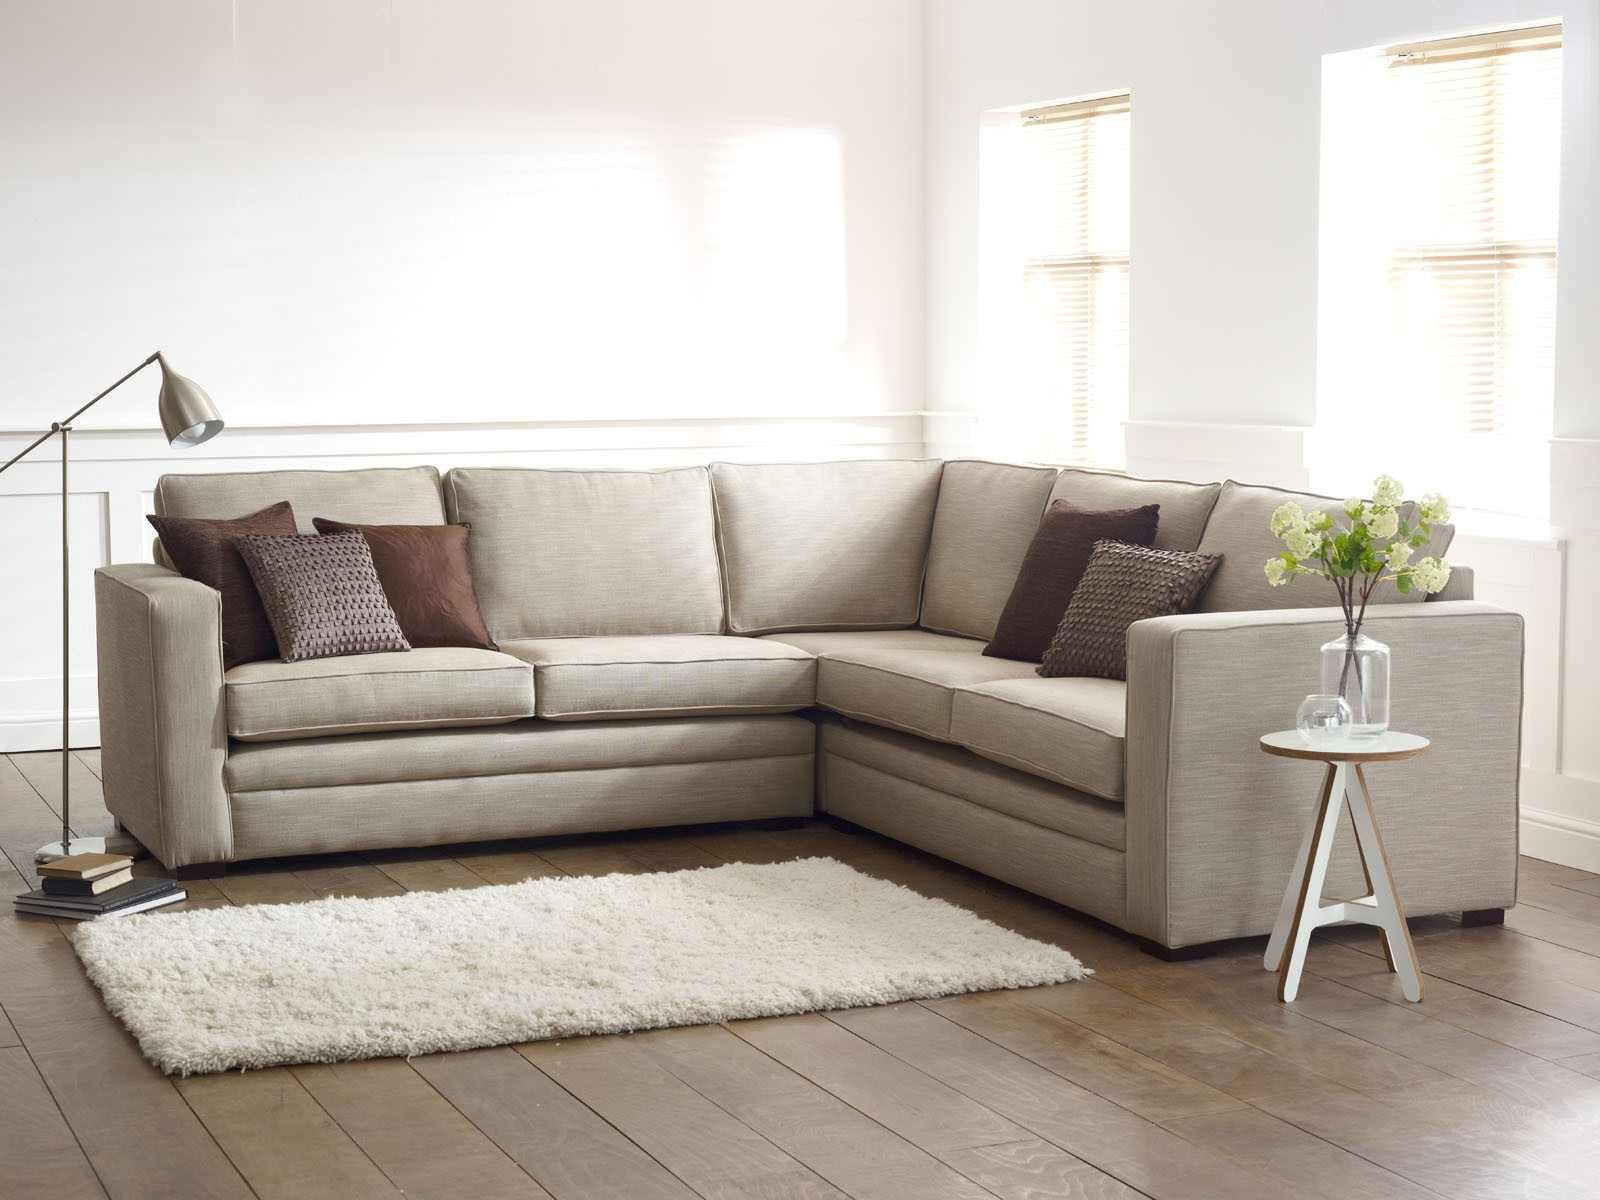 25 Best Ideas About Brown L Shaped Sofas On Pinterest Brown I